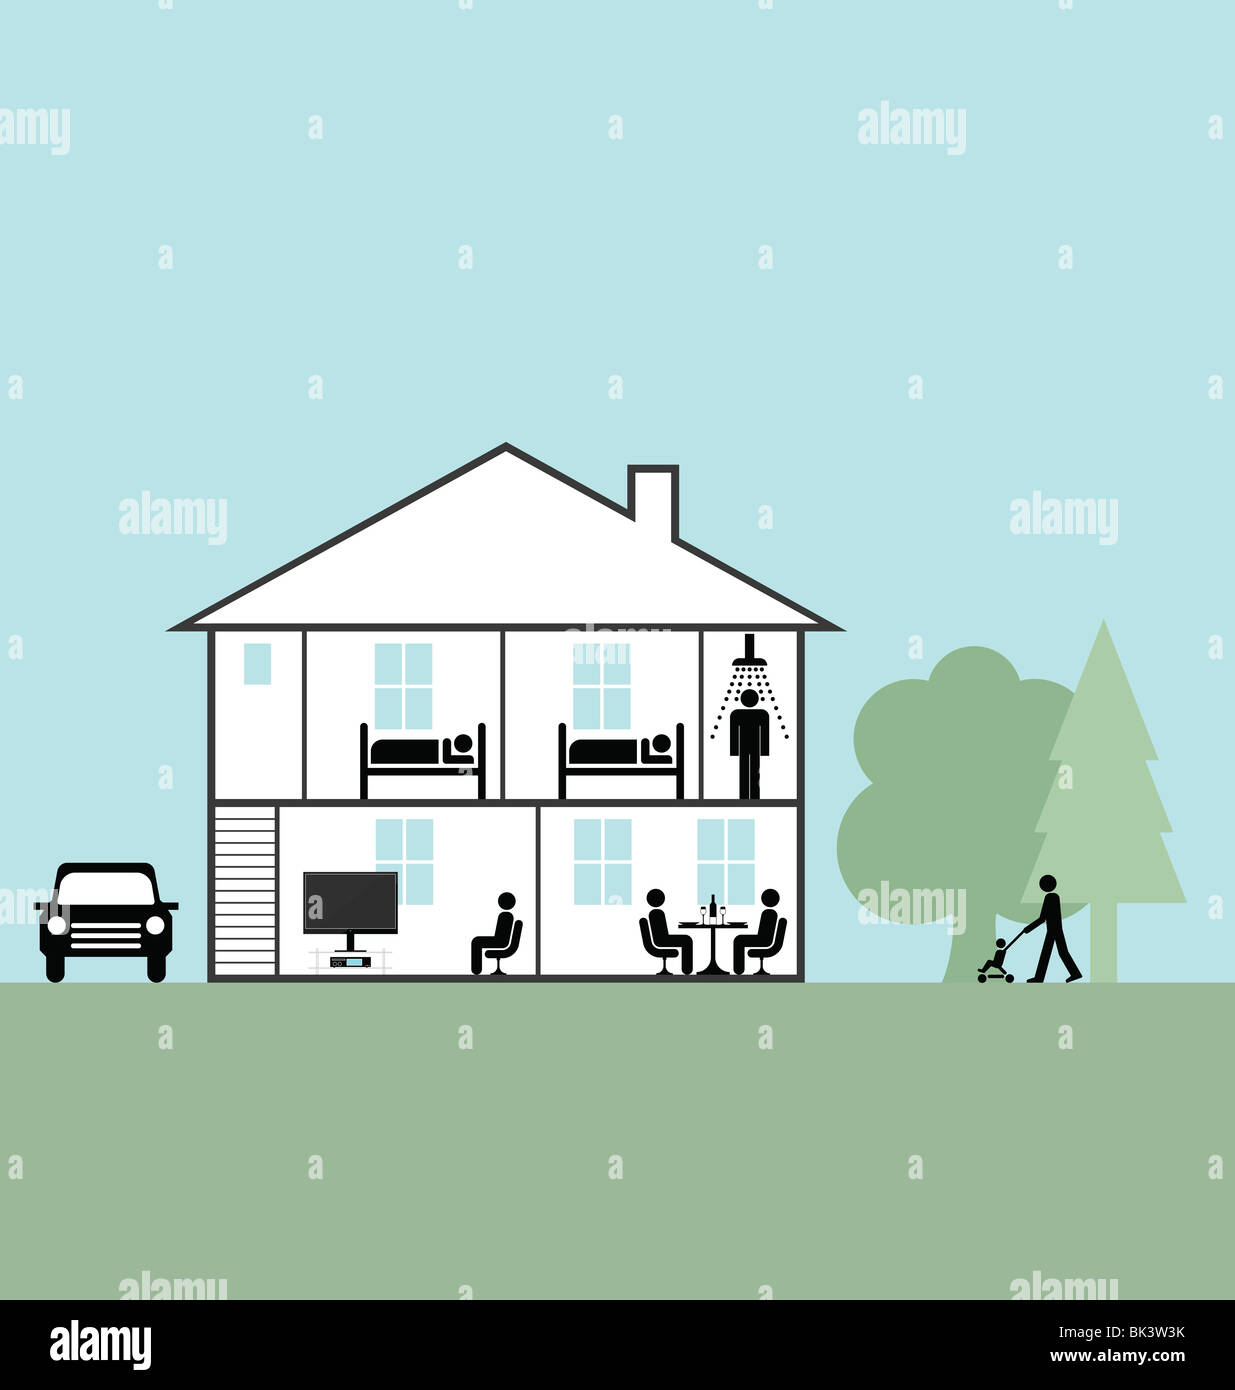 Vector cross section through a family home - Stock Image